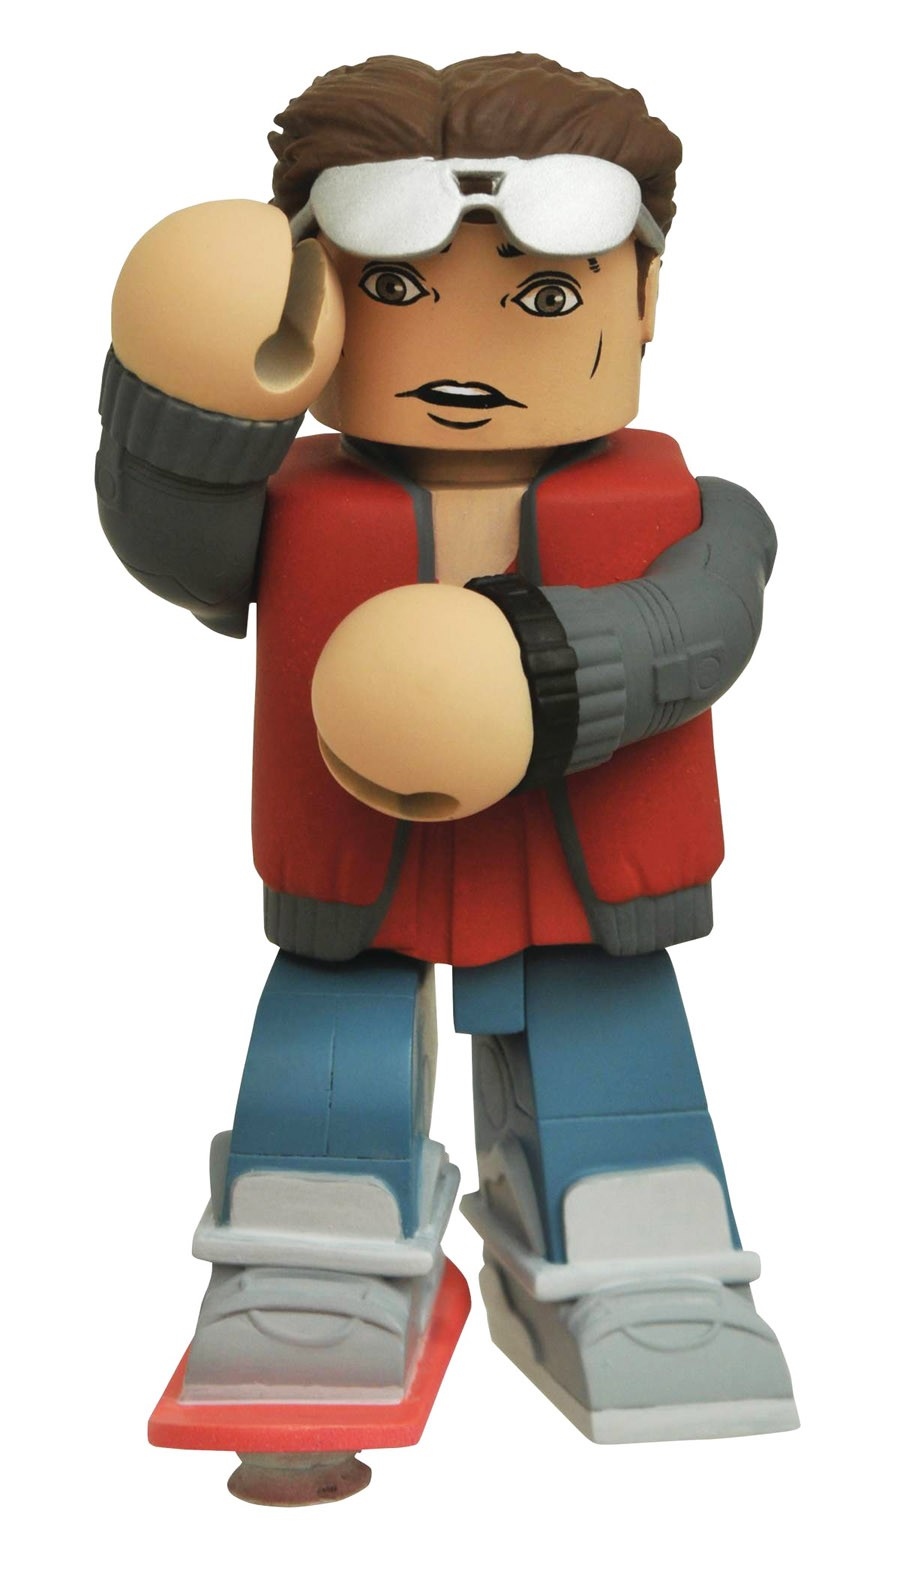 Marty McFly from Back to the Future 2 Vinimate Vinyl Figure